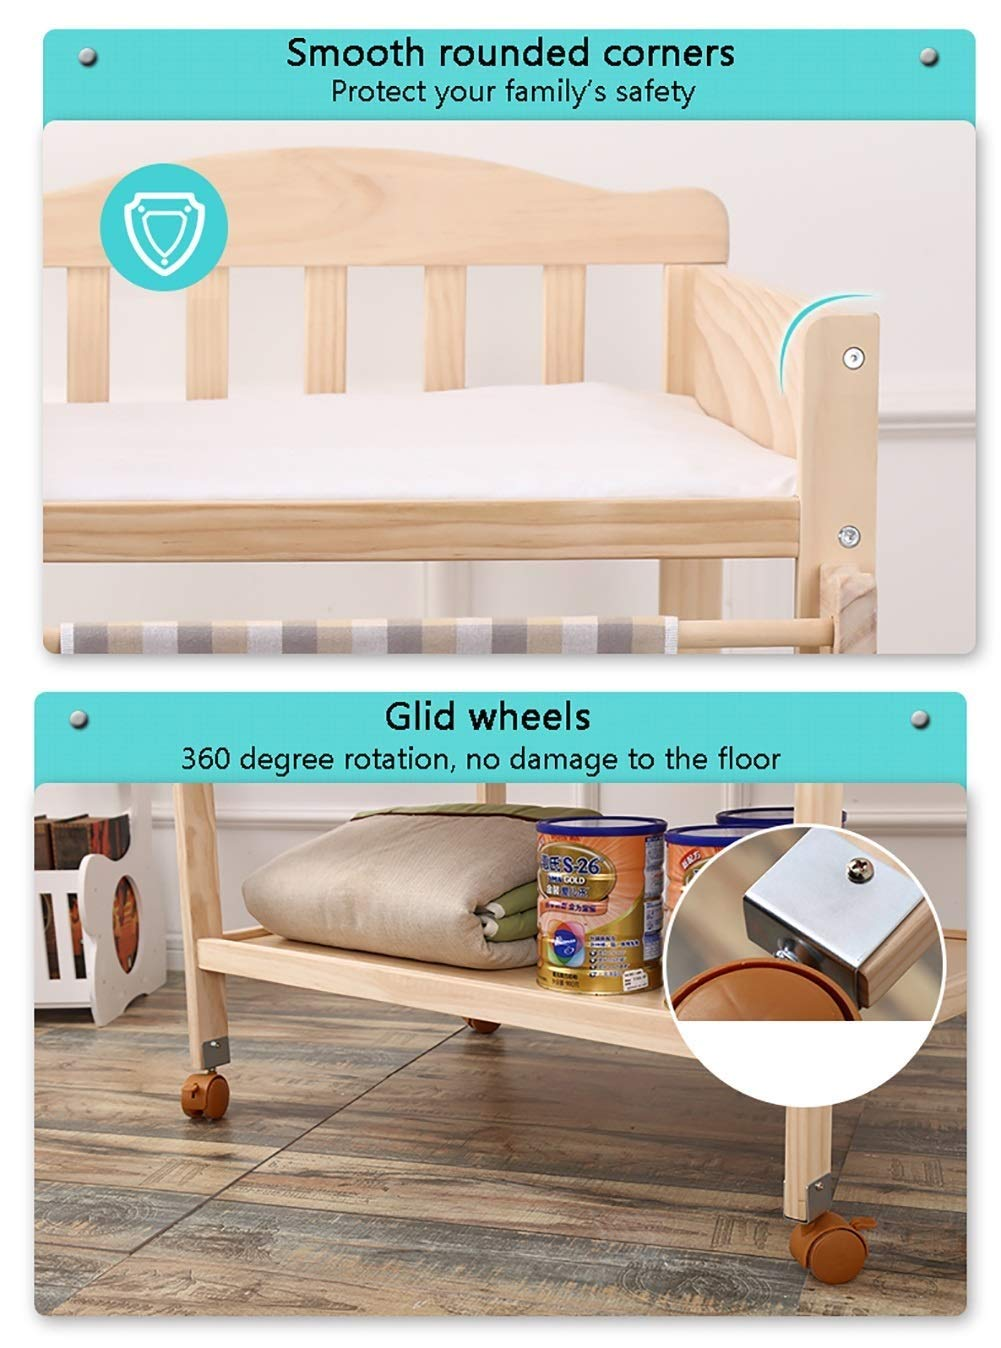 Changing Table Baby Changing Table Portable Wooden Newborn Massage Care Station Foldable Integrated Diaper Station Dresser (Color : Wood) Changing Table ●Size and Safe and Stable- 82×58×97cm/ 32×23×38 inch,Suitable for babies weighing less than 25kg,With seat belt,Changing pad has a restraining strap for added safety and is made of easy to clean, soft ●2-in-1 design- Baby changing table can be used as baby massaging table as well. It is designed at the proper height of parent to prevent mom's back aches and pains from kneeling or bending when changing diapers to babies. ●Premium materials - Using high-quality materials for our 2 in 1 infant changing table,Reinforced wood,it is durable and stable for long time daily use,And easy to clean and maintain. 7